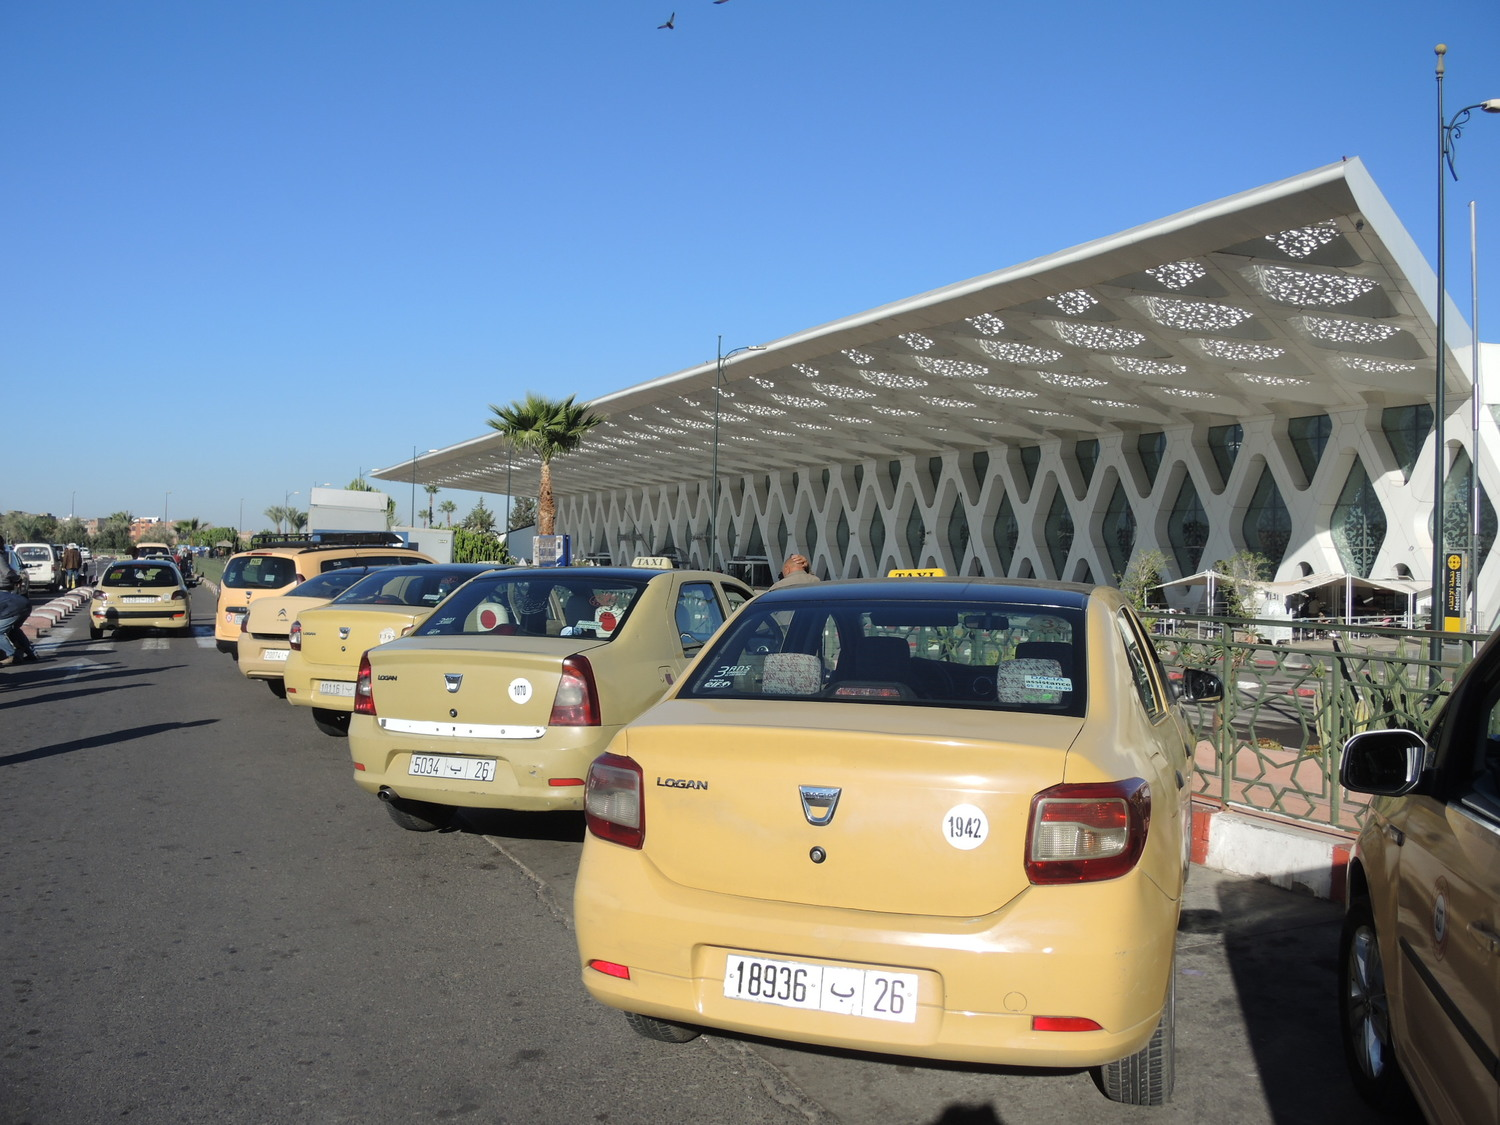 Taxis near the airport in Morocco